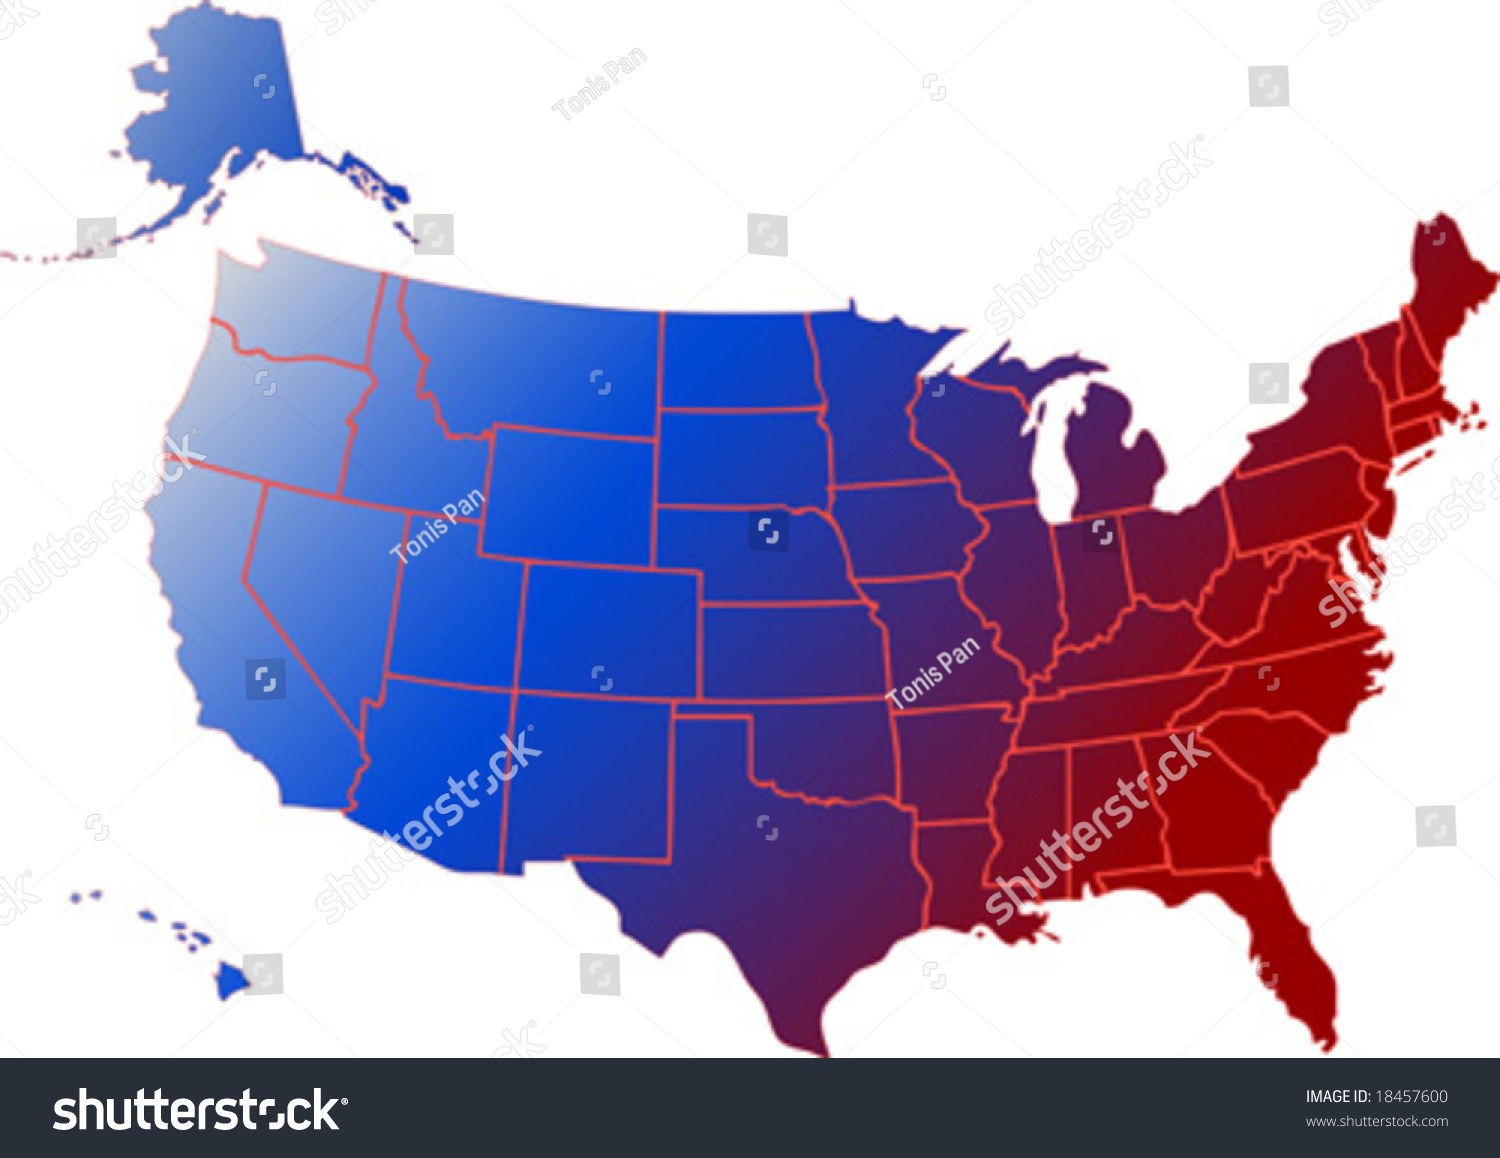 Vector Clip Art Map Of Usa With All Fifty States Showing Including Alaska And